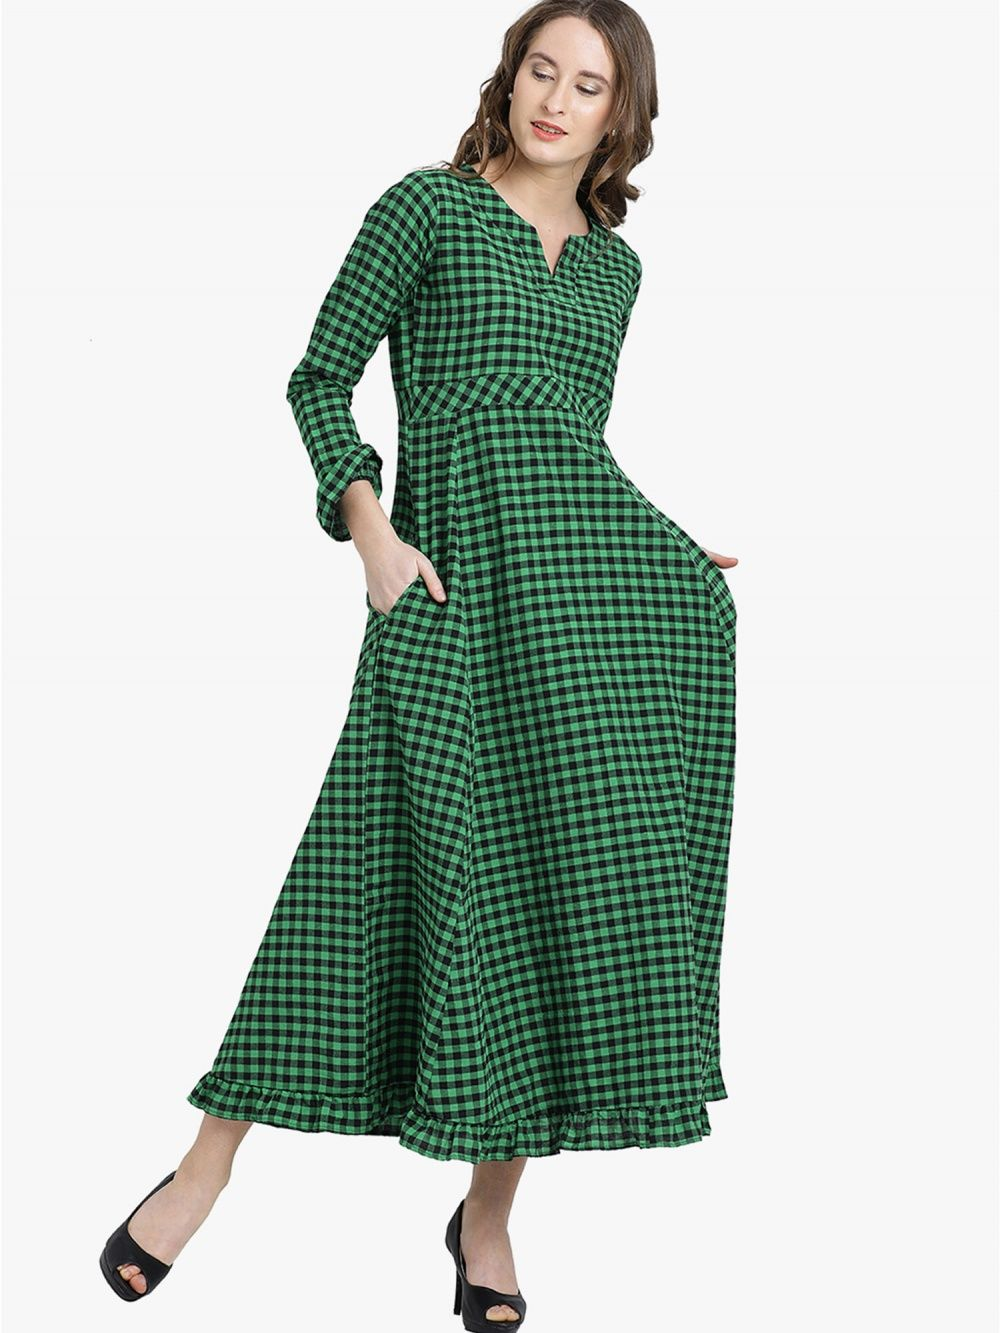 af76e29272 Fabnest Dresses   Buy Fabnest Green And Black Checked Maxi Dress ...